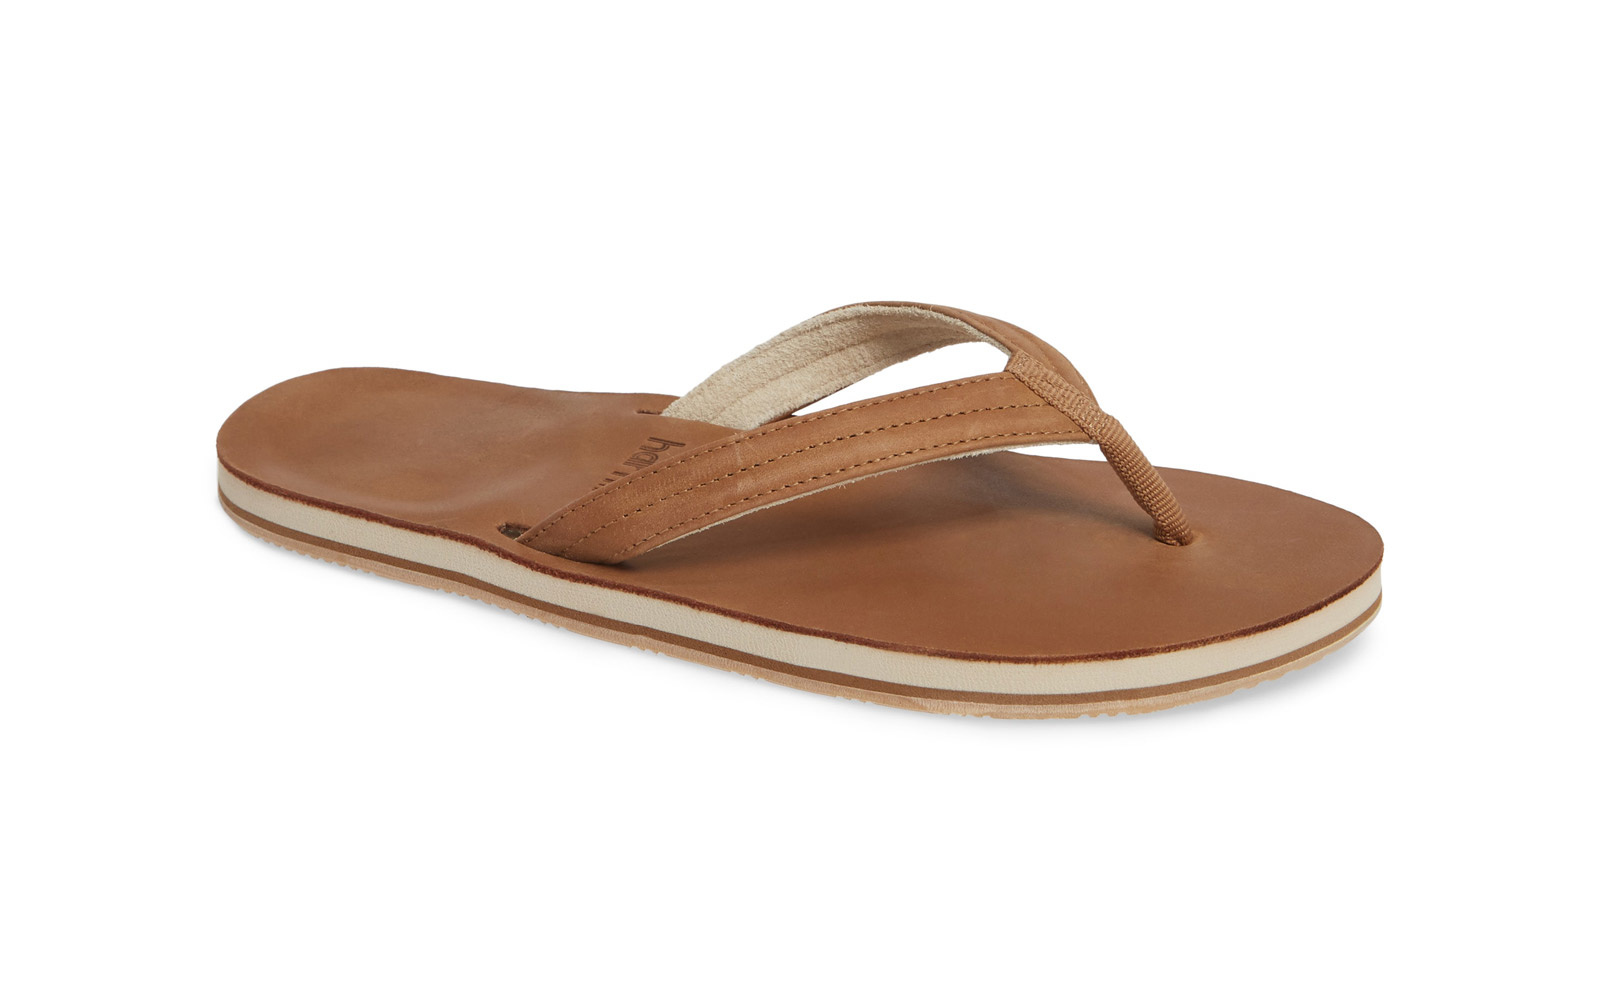 556dc4c96 Better-for-you Flip-flops  Hari Mari  Lakes  Flip-flop. hari mari womens comfortable  walking sandals